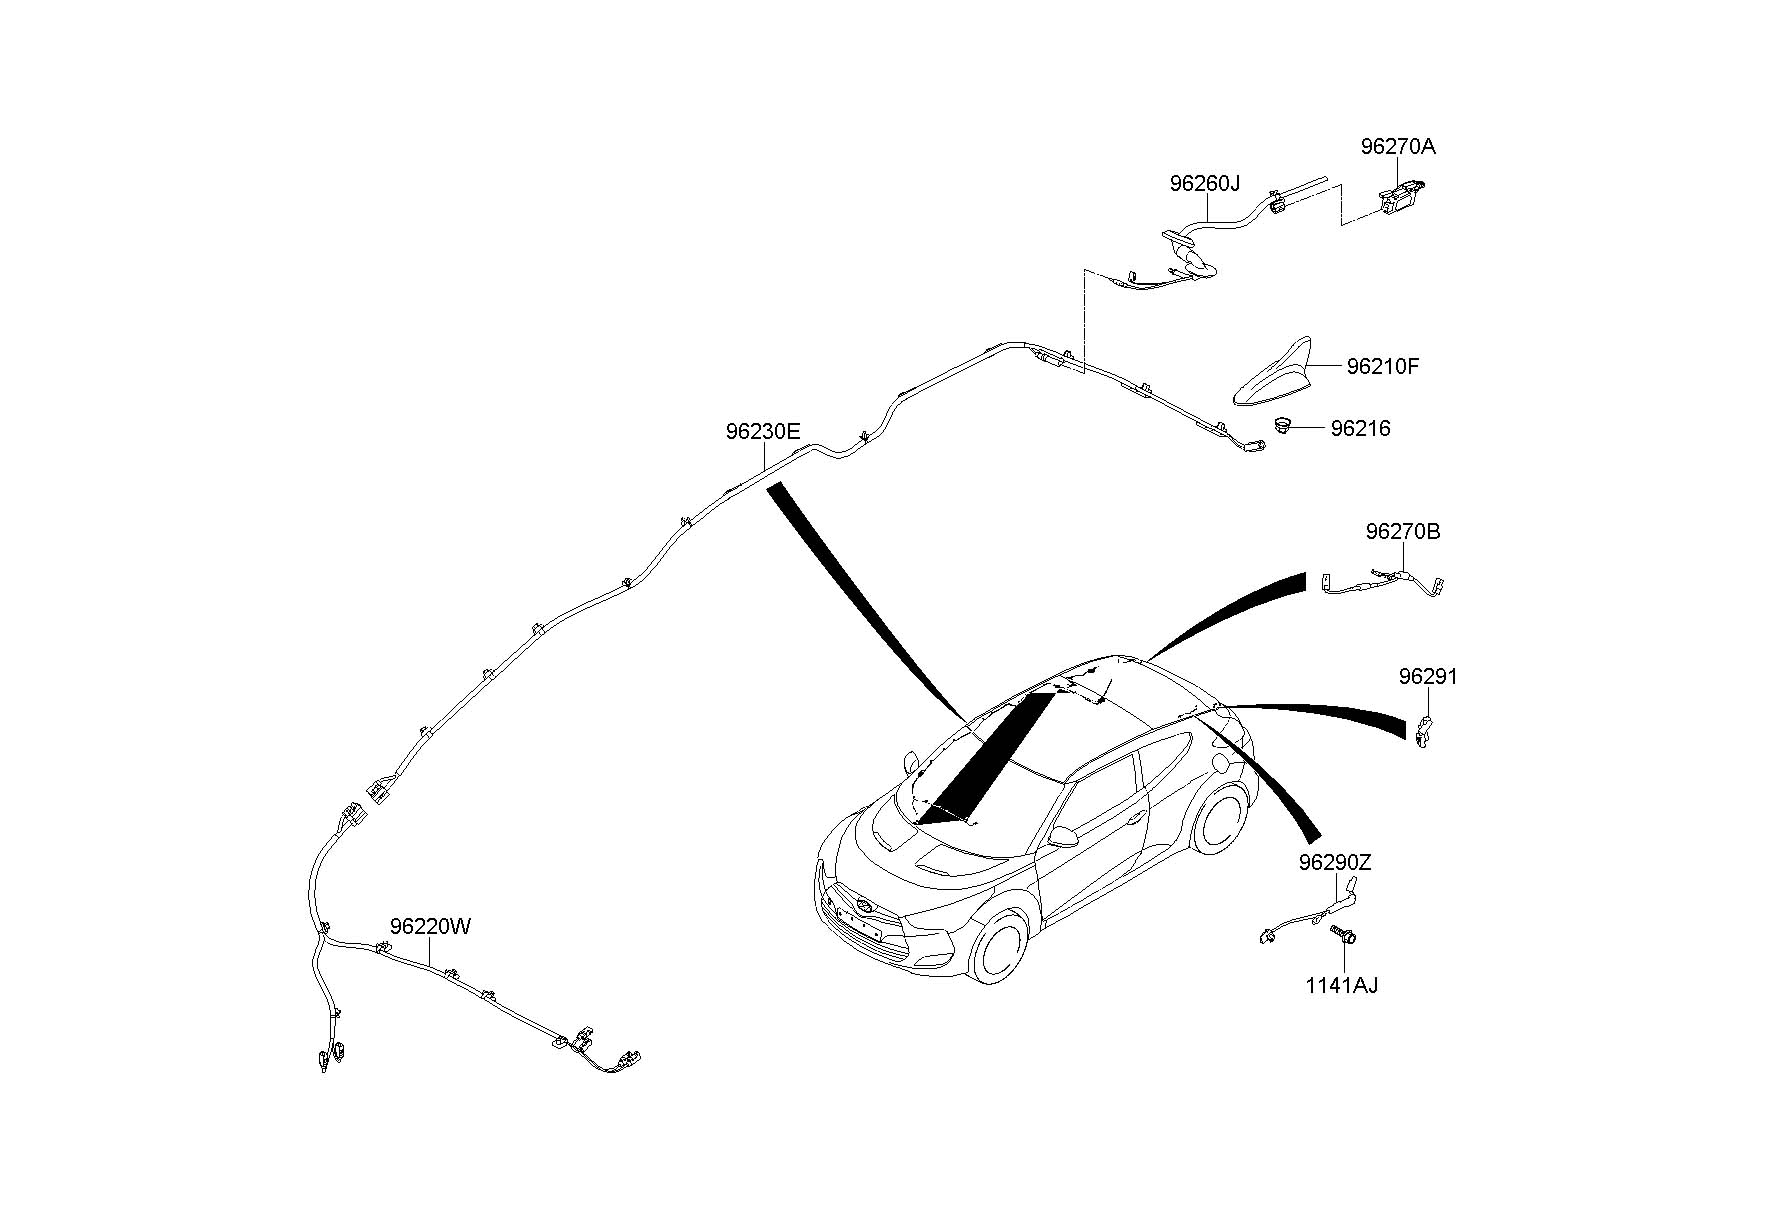 2013 Hyundai Veloster Antenna Assembly - Roof